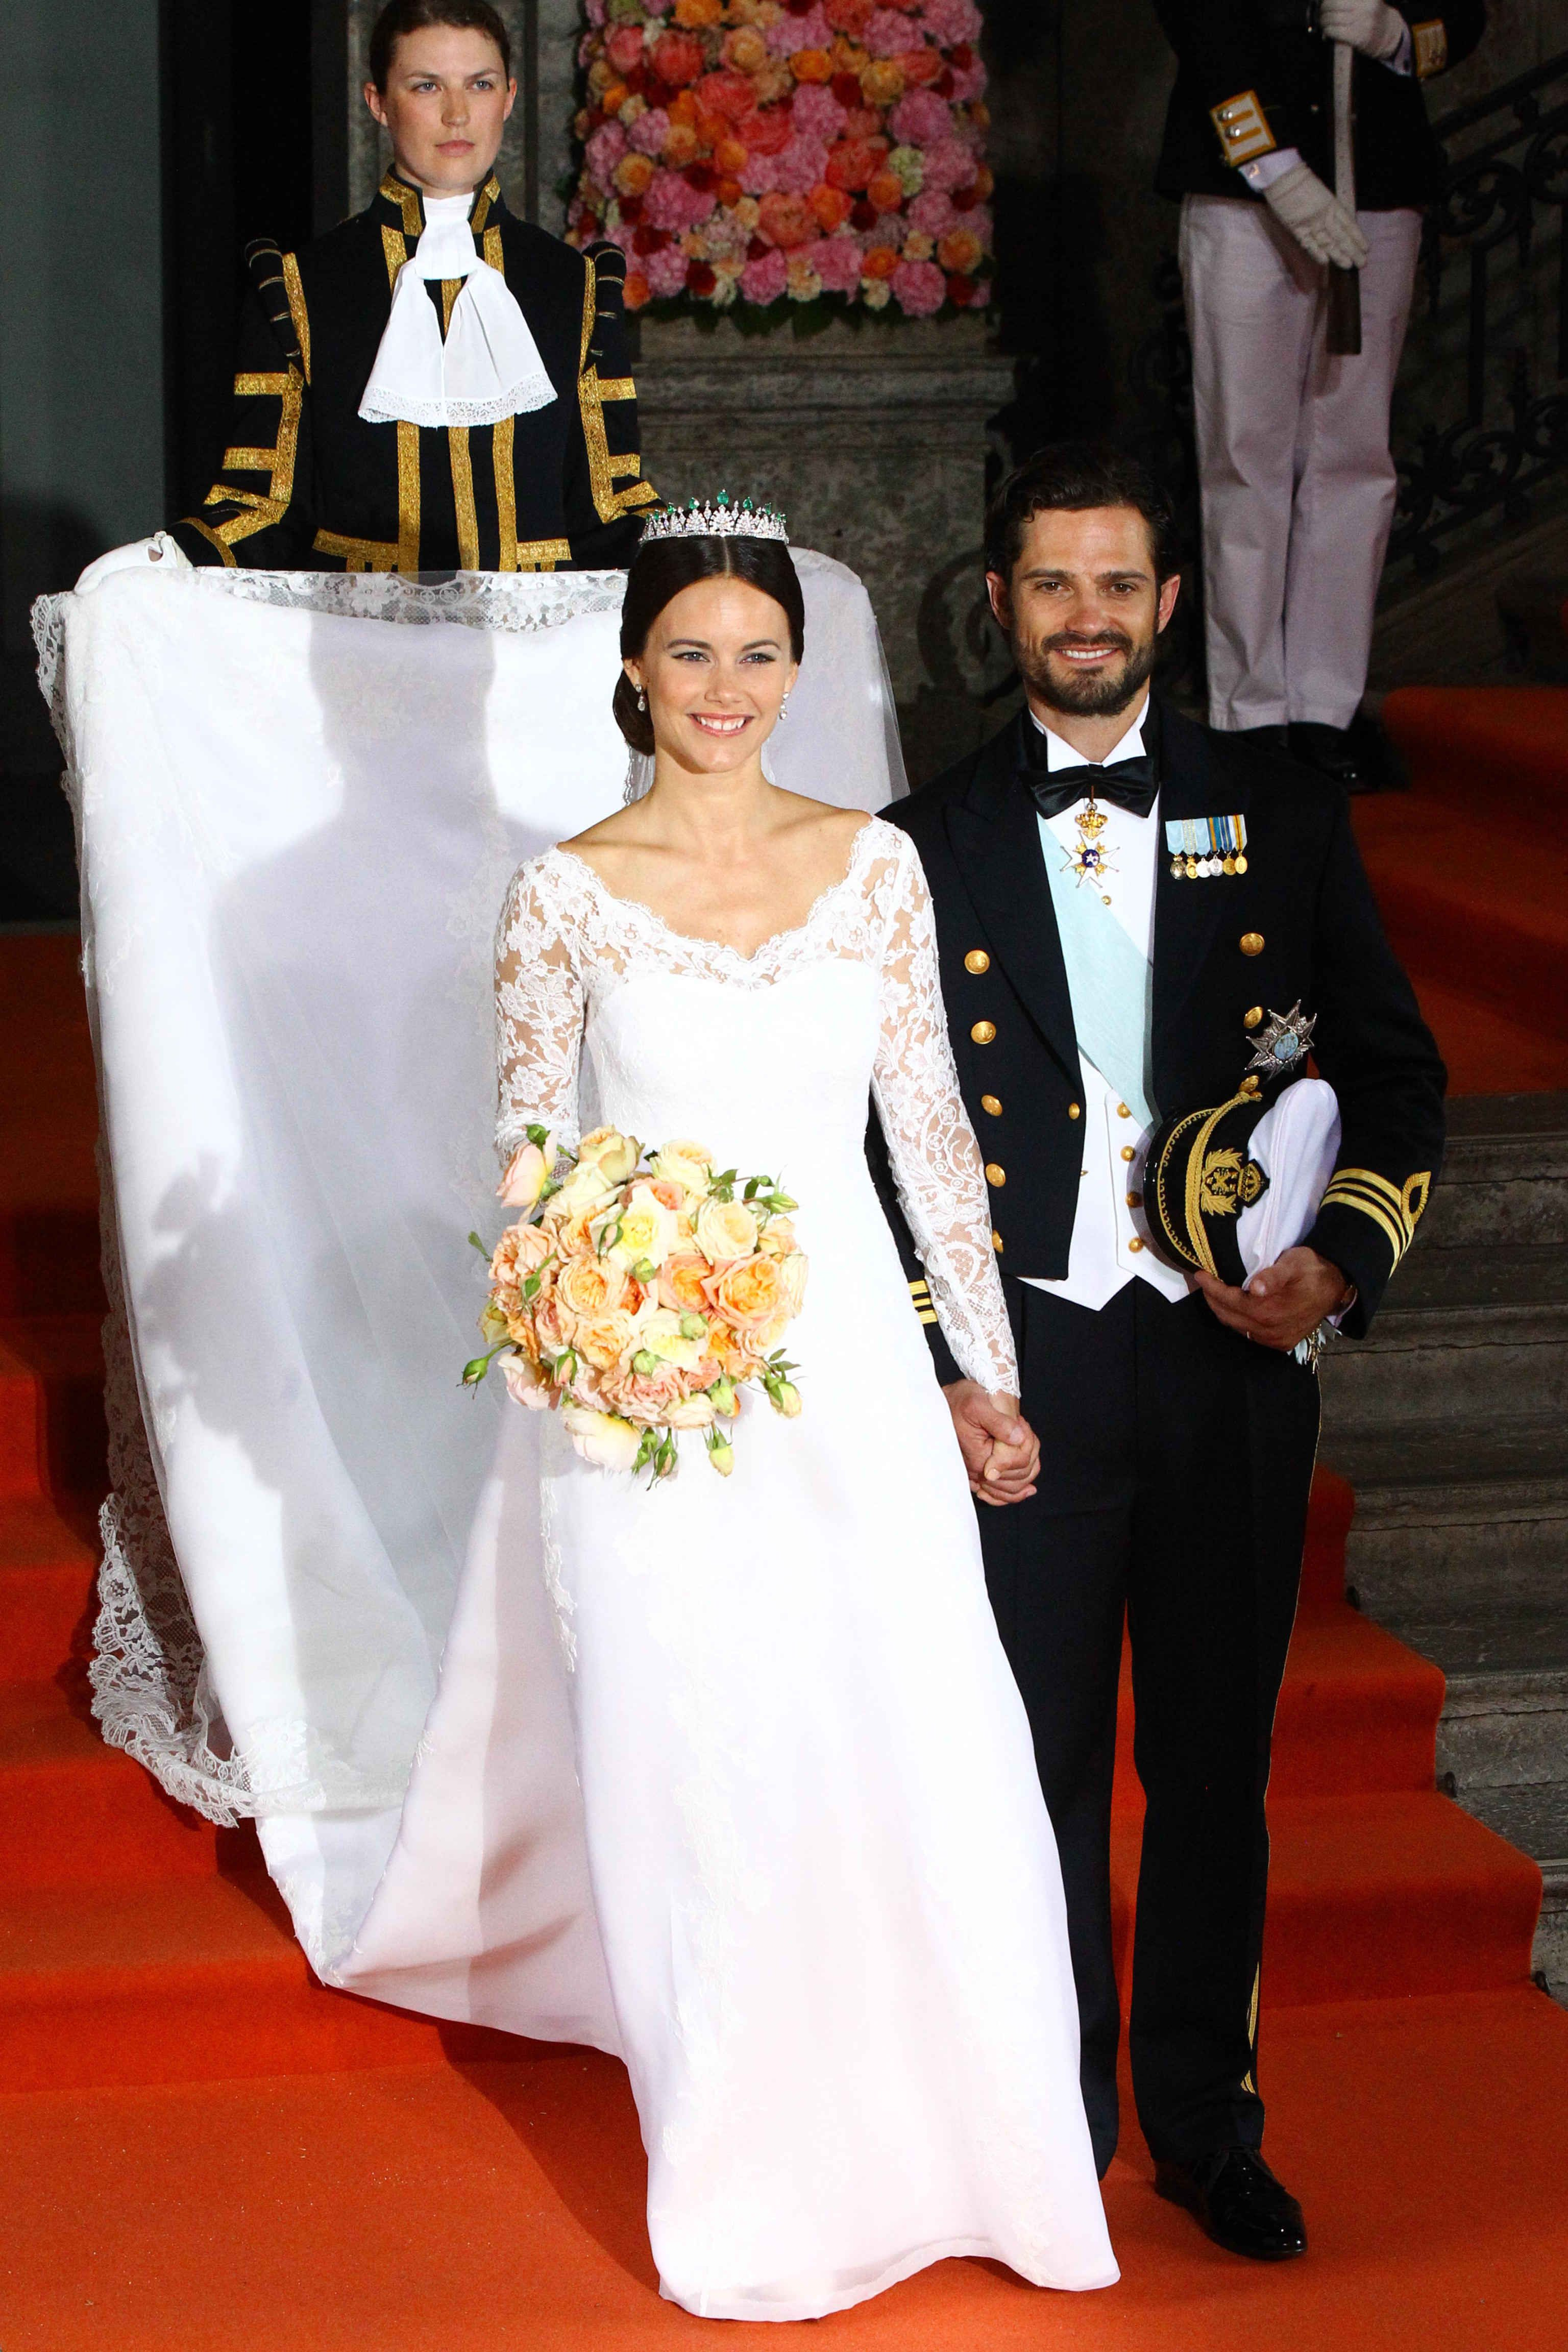 Sofia Hellqvist Weds Sweden S Prince Carl In A Gorgeous Long Sleeved Gown Royal Brides Princess Sofia Of Sweden Royal Wedding [ 4608 x 3072 Pixel ]